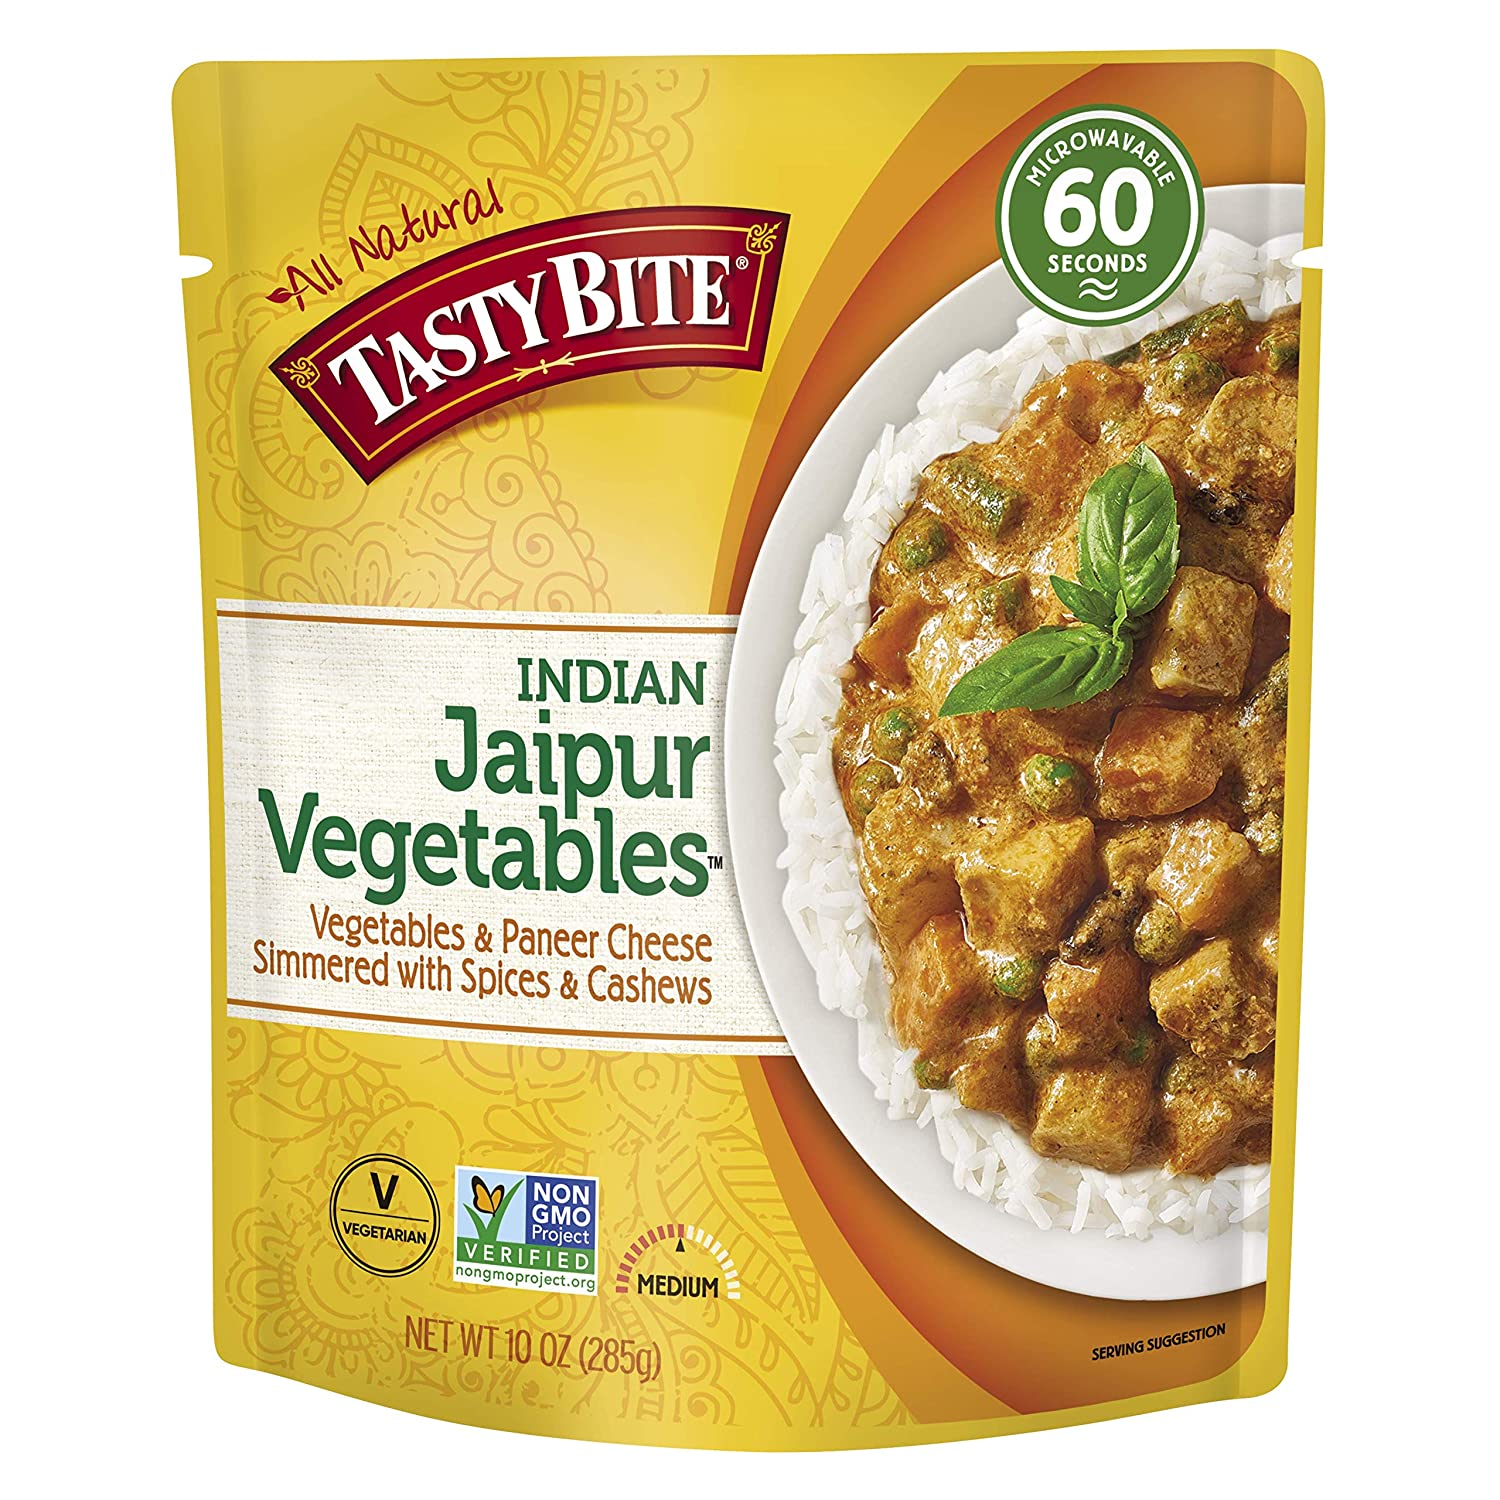 Tasty Bite Indian Jaipur Vegetables, Microwaveable Ready to Eat Entrée, 10 Ounce (Pack of 6)